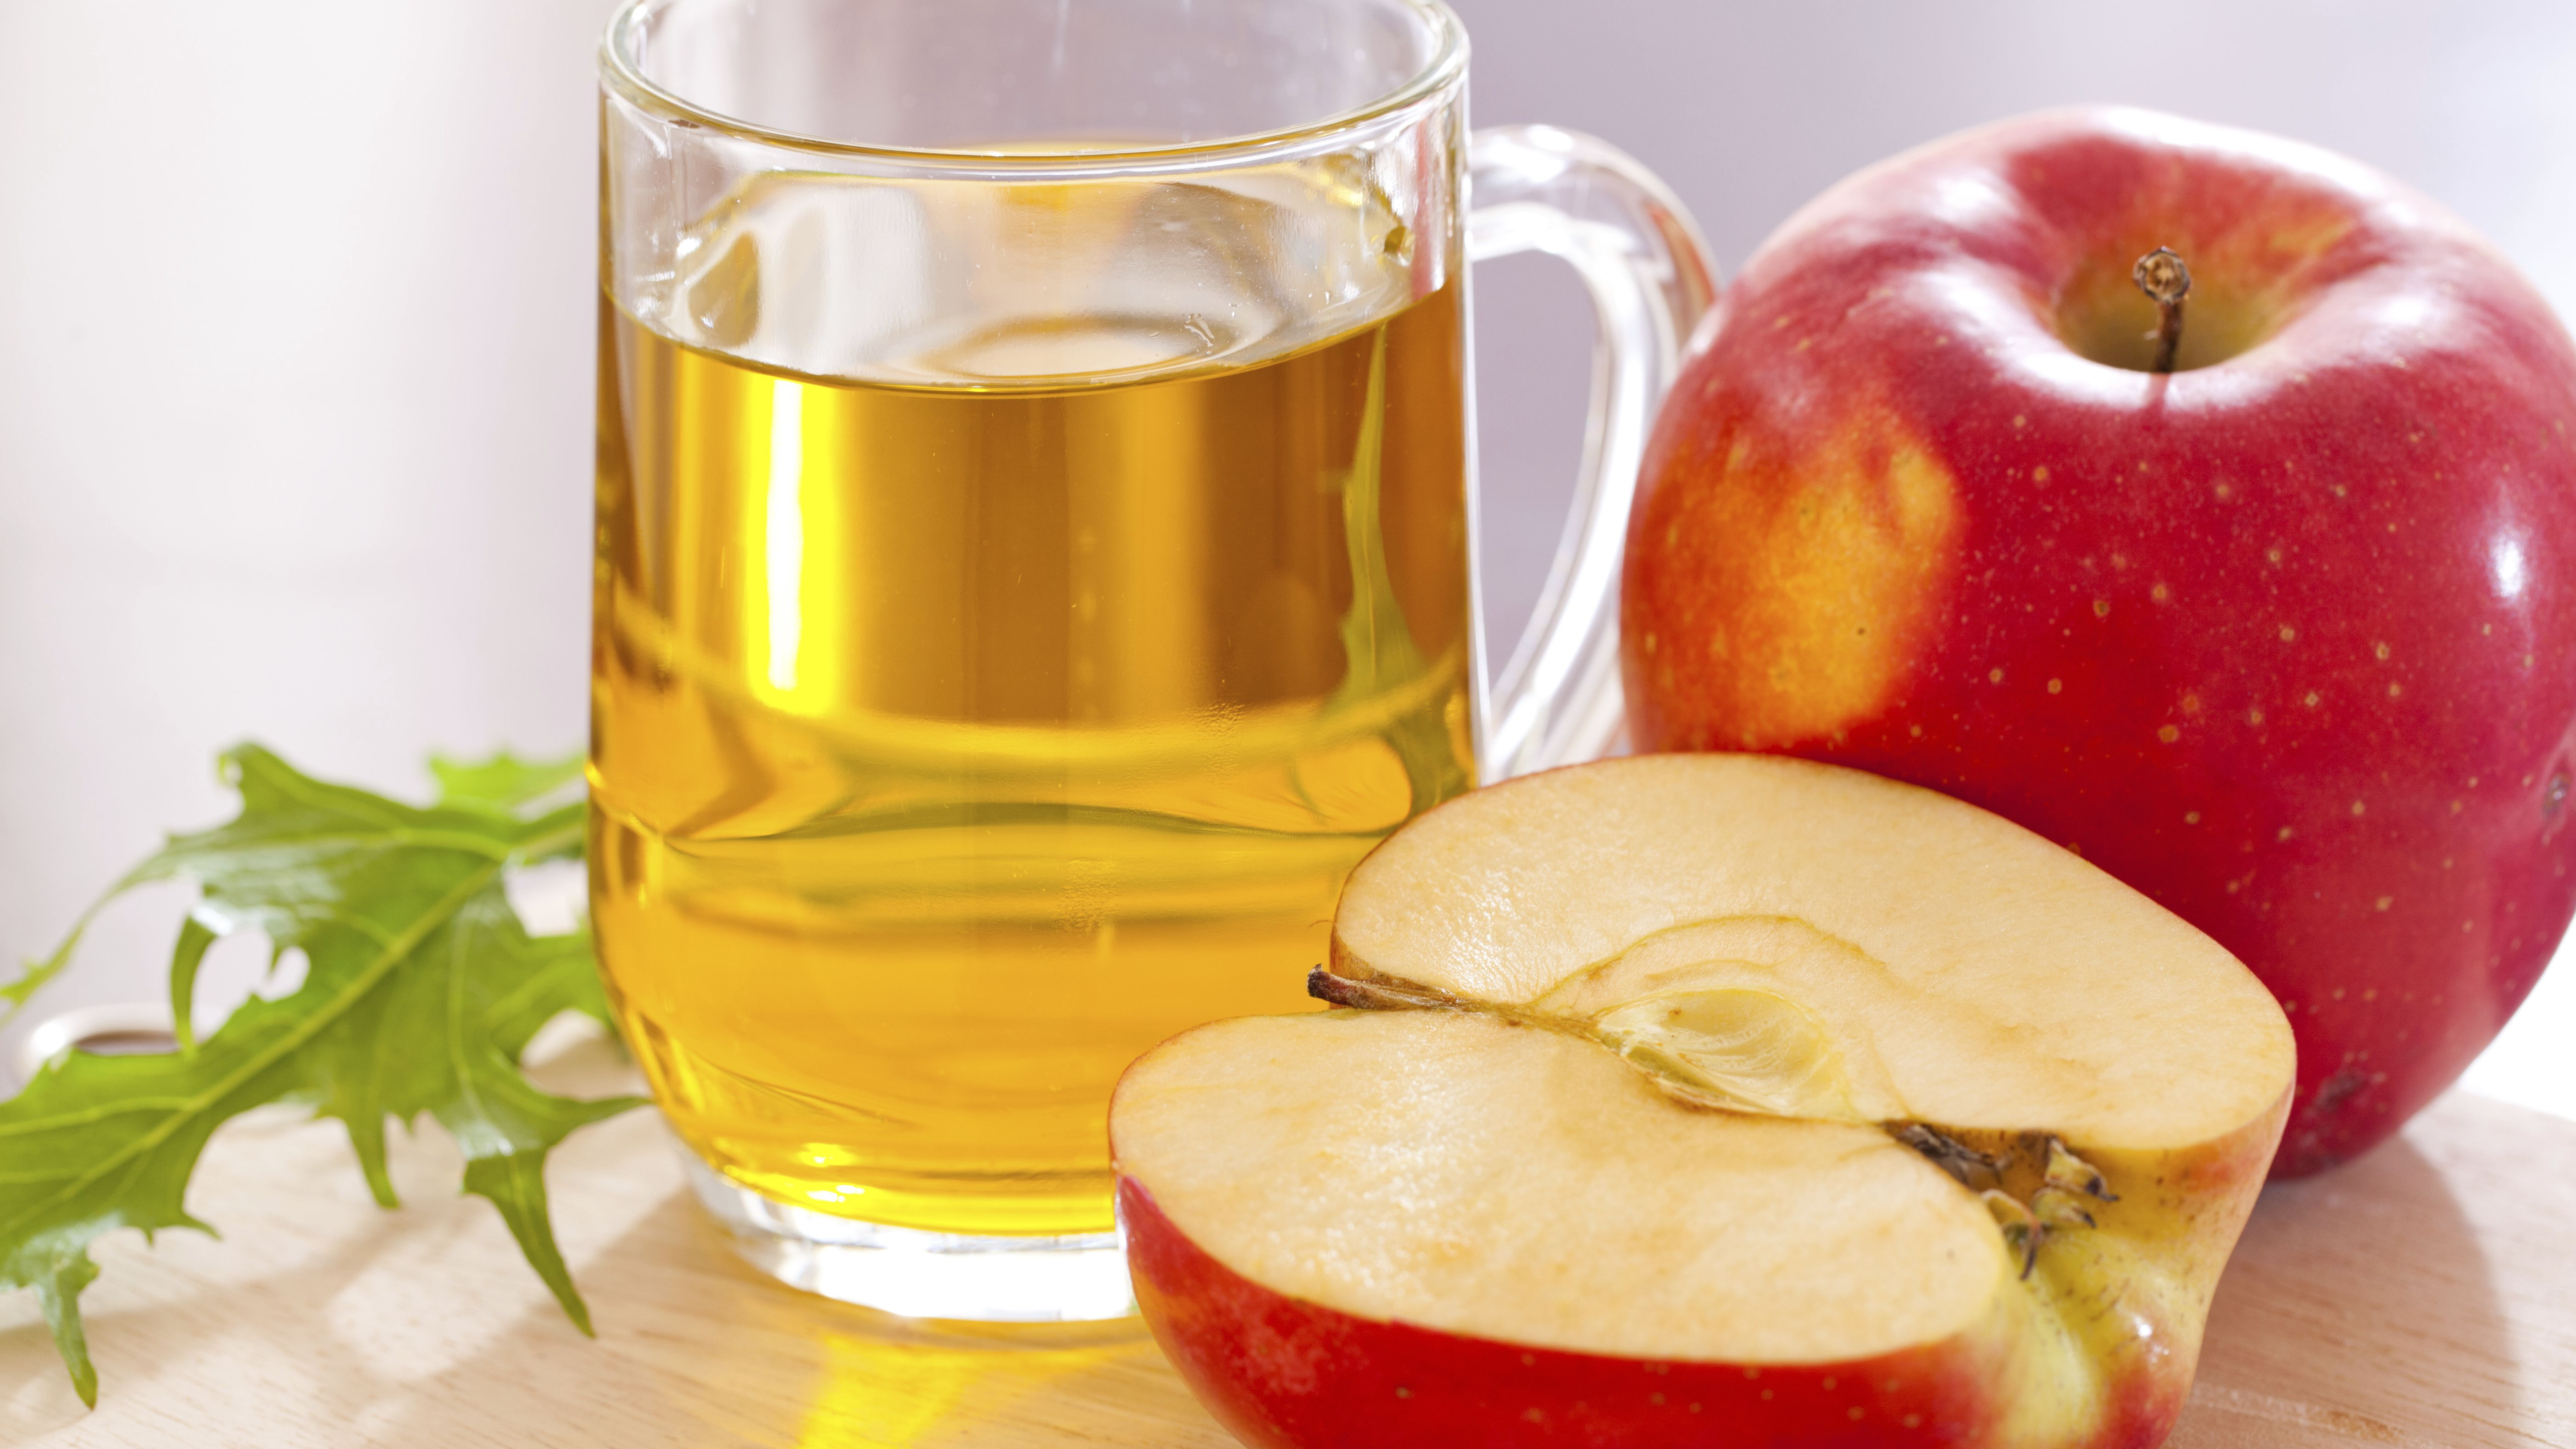 Does Apple Cider Vinegar Clear Acne?